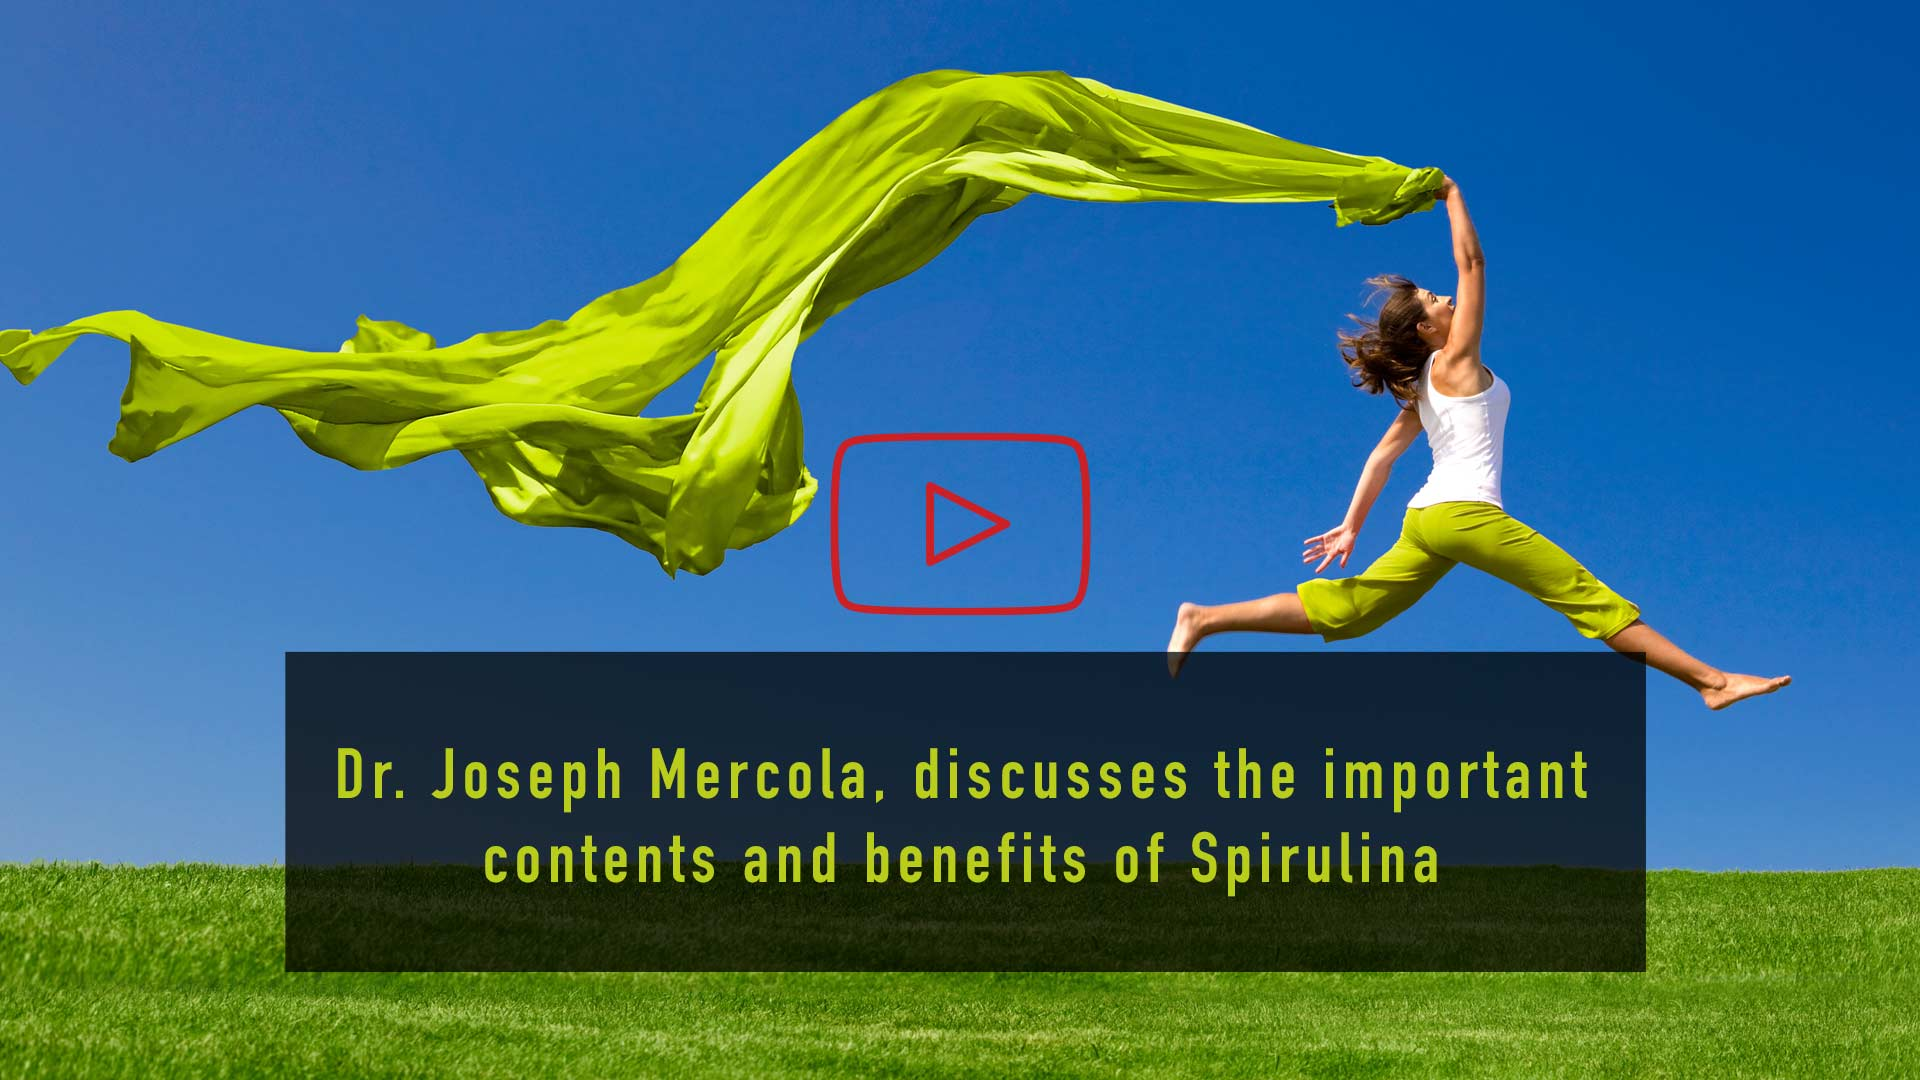 Dr Joseph Mercola discusses the important content and benefits of Spirulina